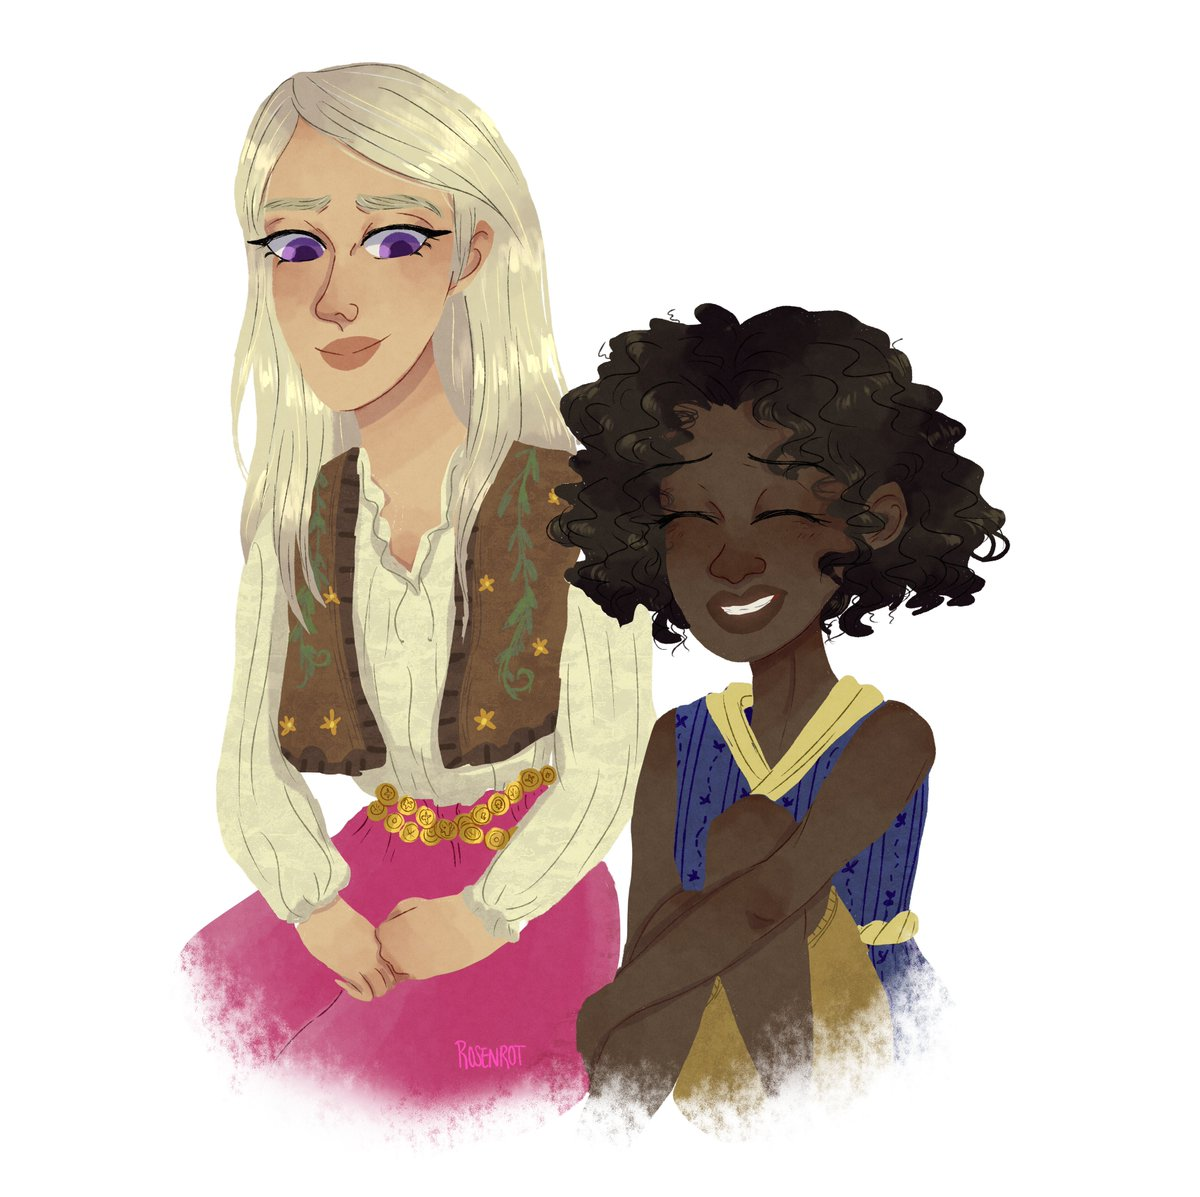 requests #asoiaf #fanart #DaenerysTargaryen #missandei #JonSnow #books #digitalart #GameOfThrones https://t.co/bVjH8lmtIP